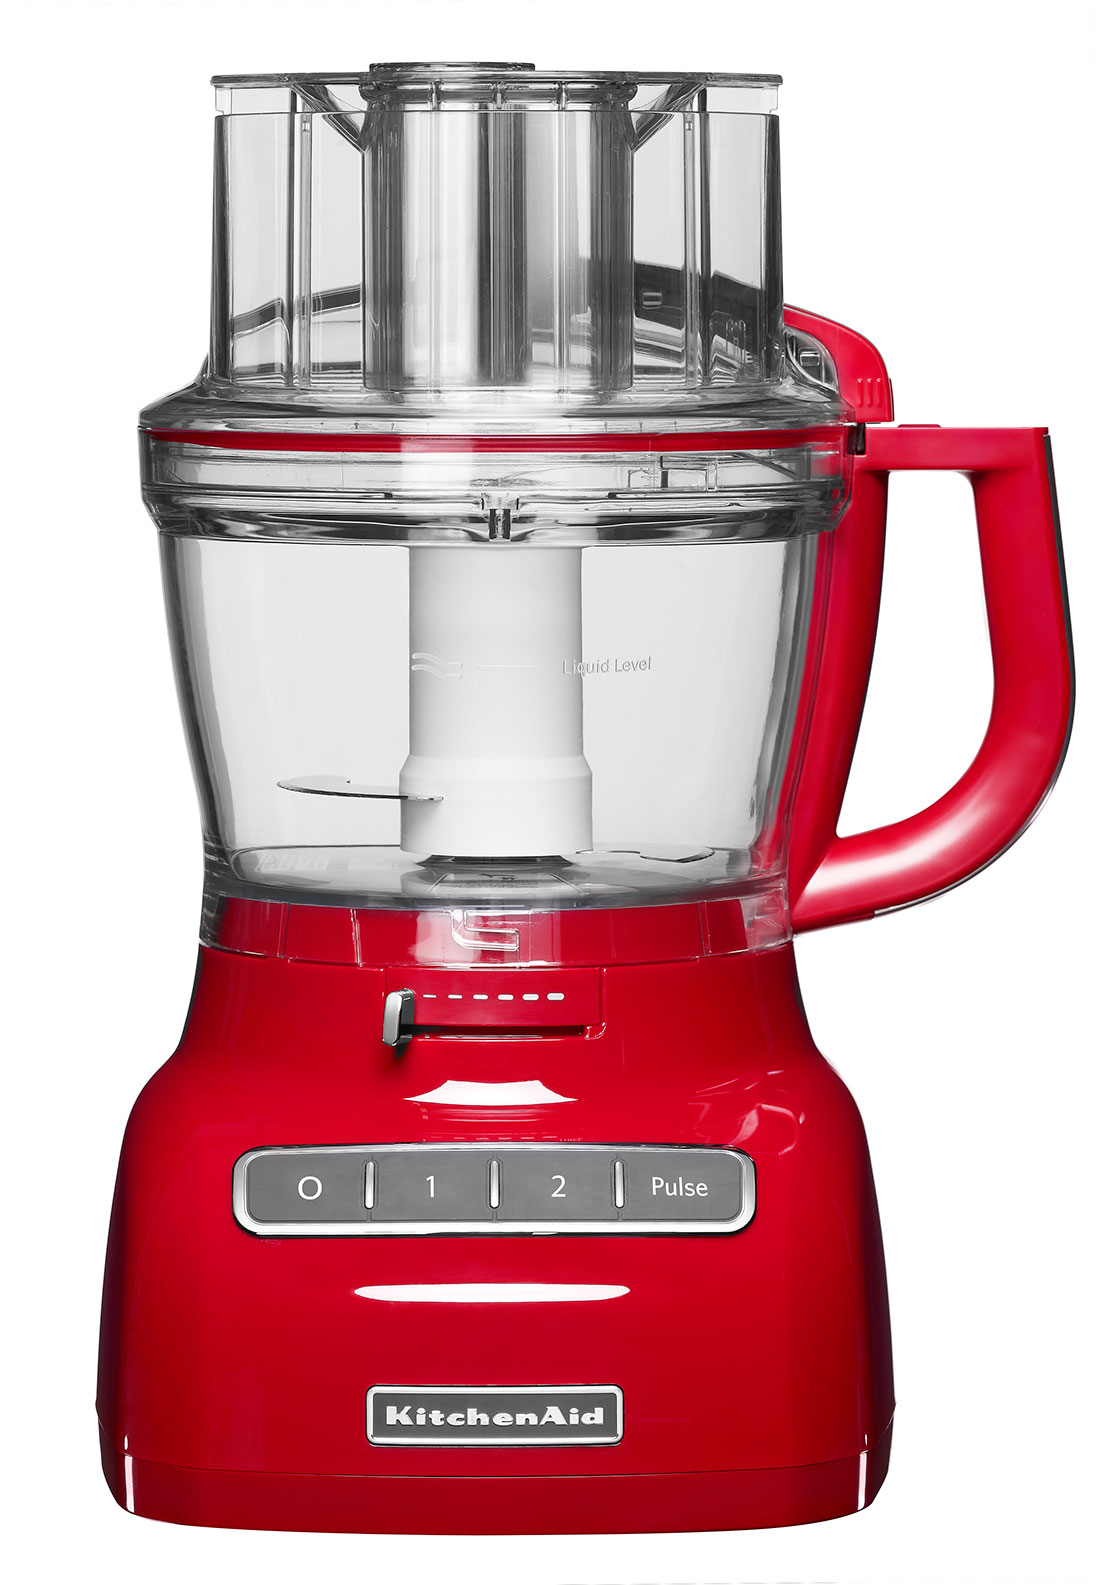 KitchenAid Food Processor, Candy Apple Red 3.1L